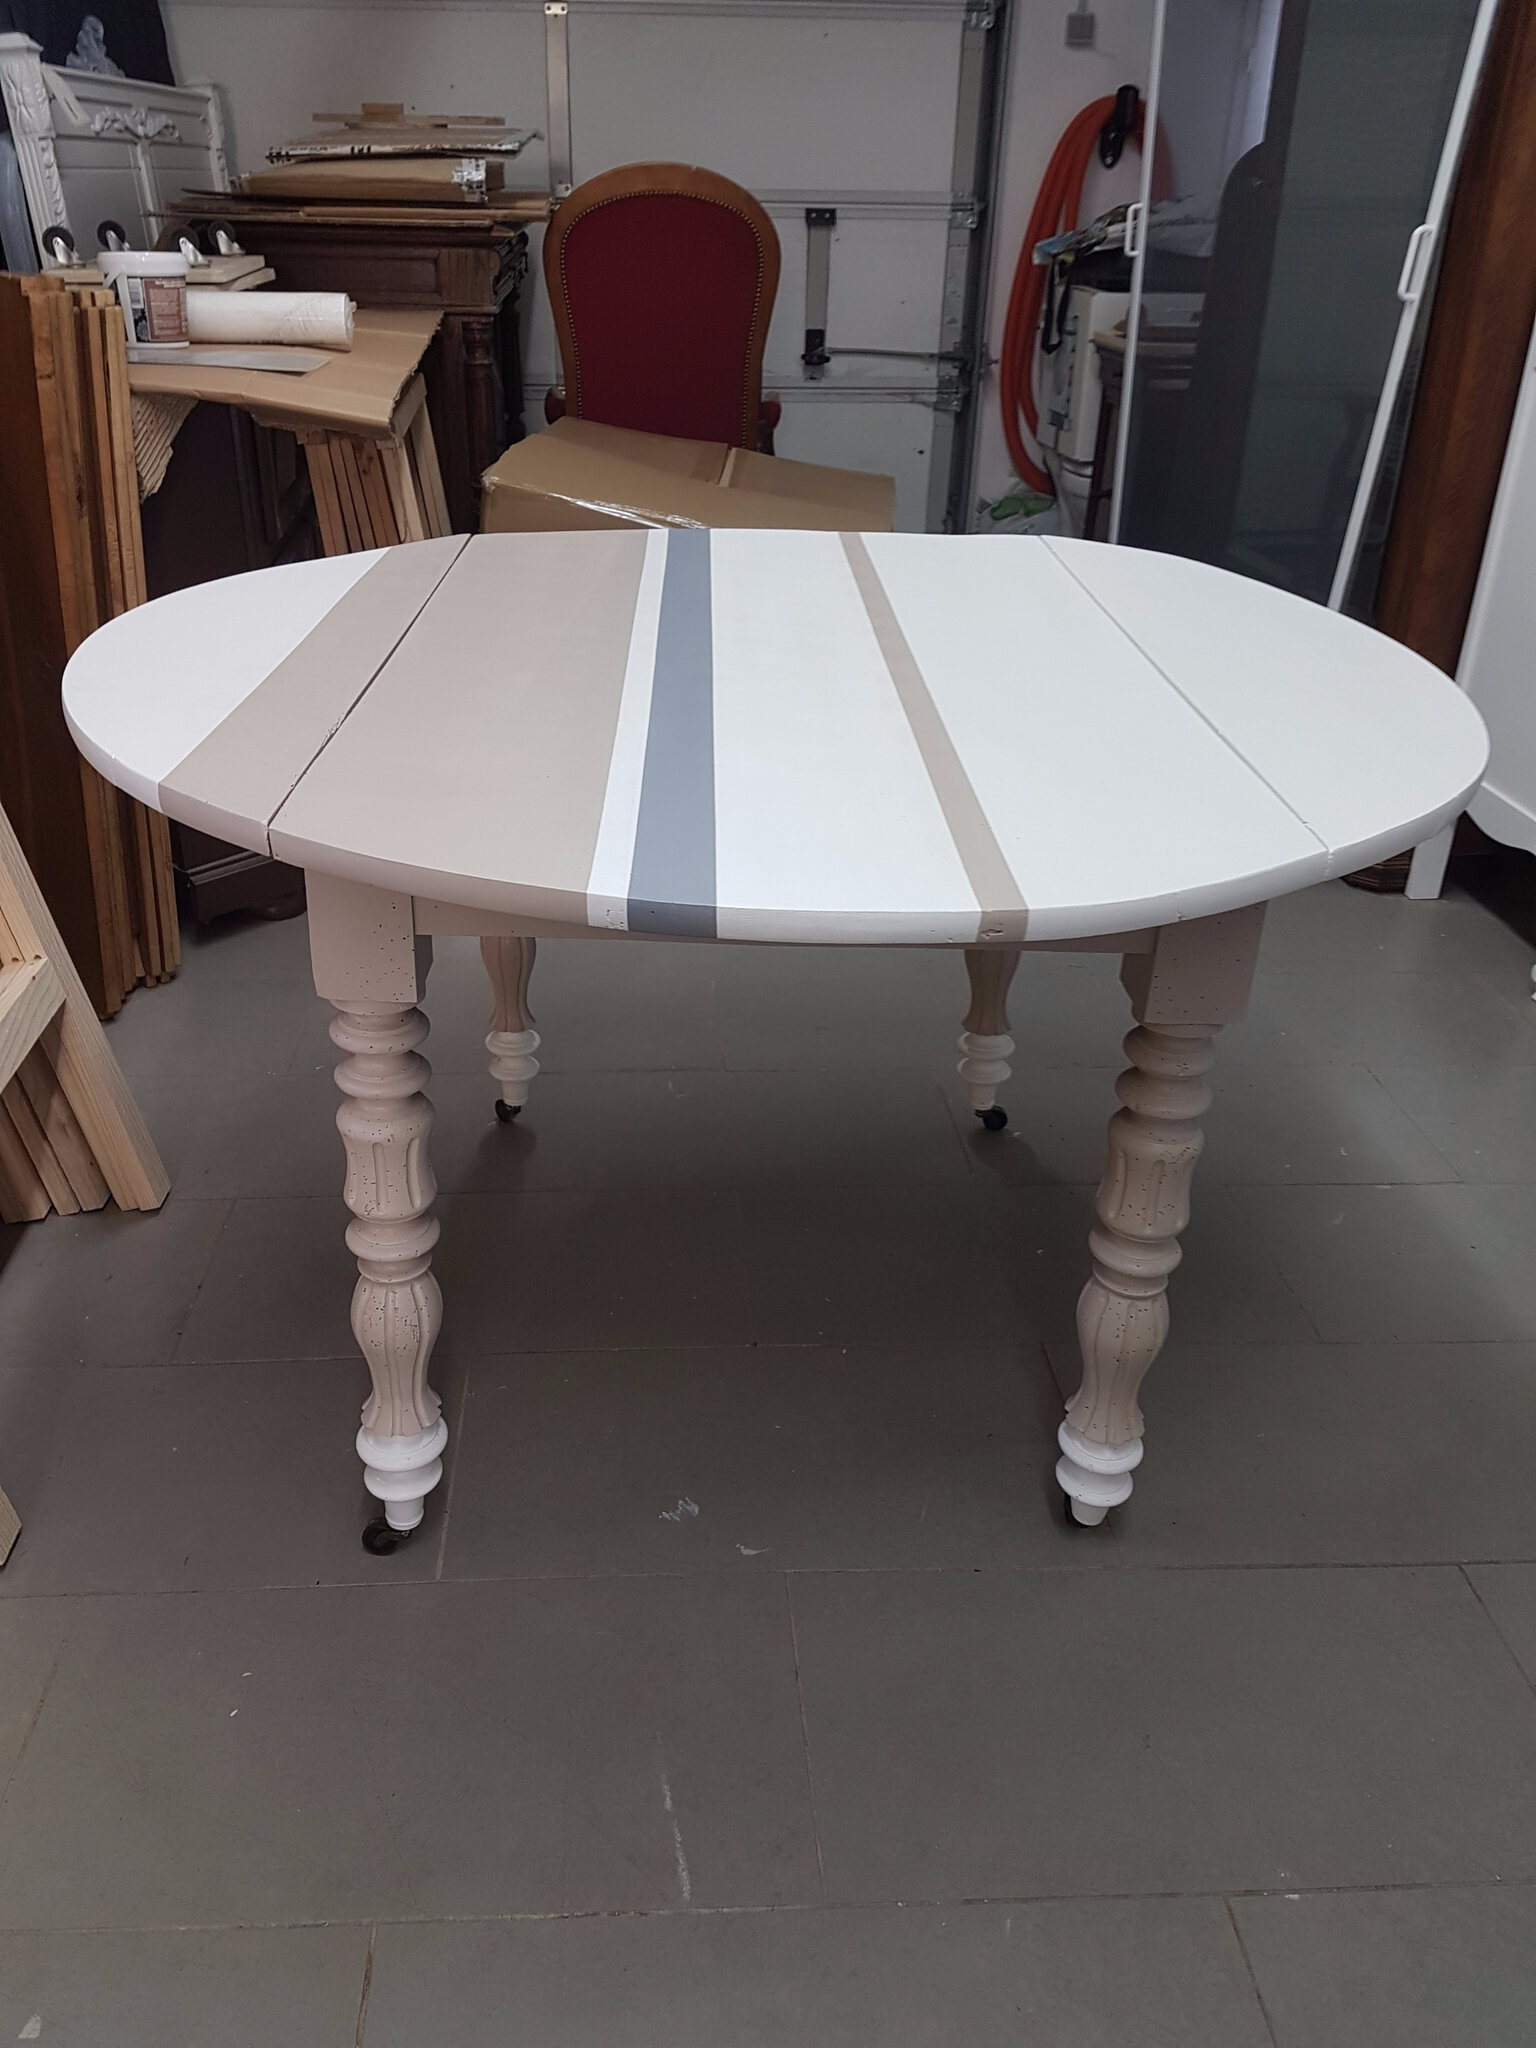 Table à rabats version console  Grenier & Patines 45 -> Table Ronde Relookee